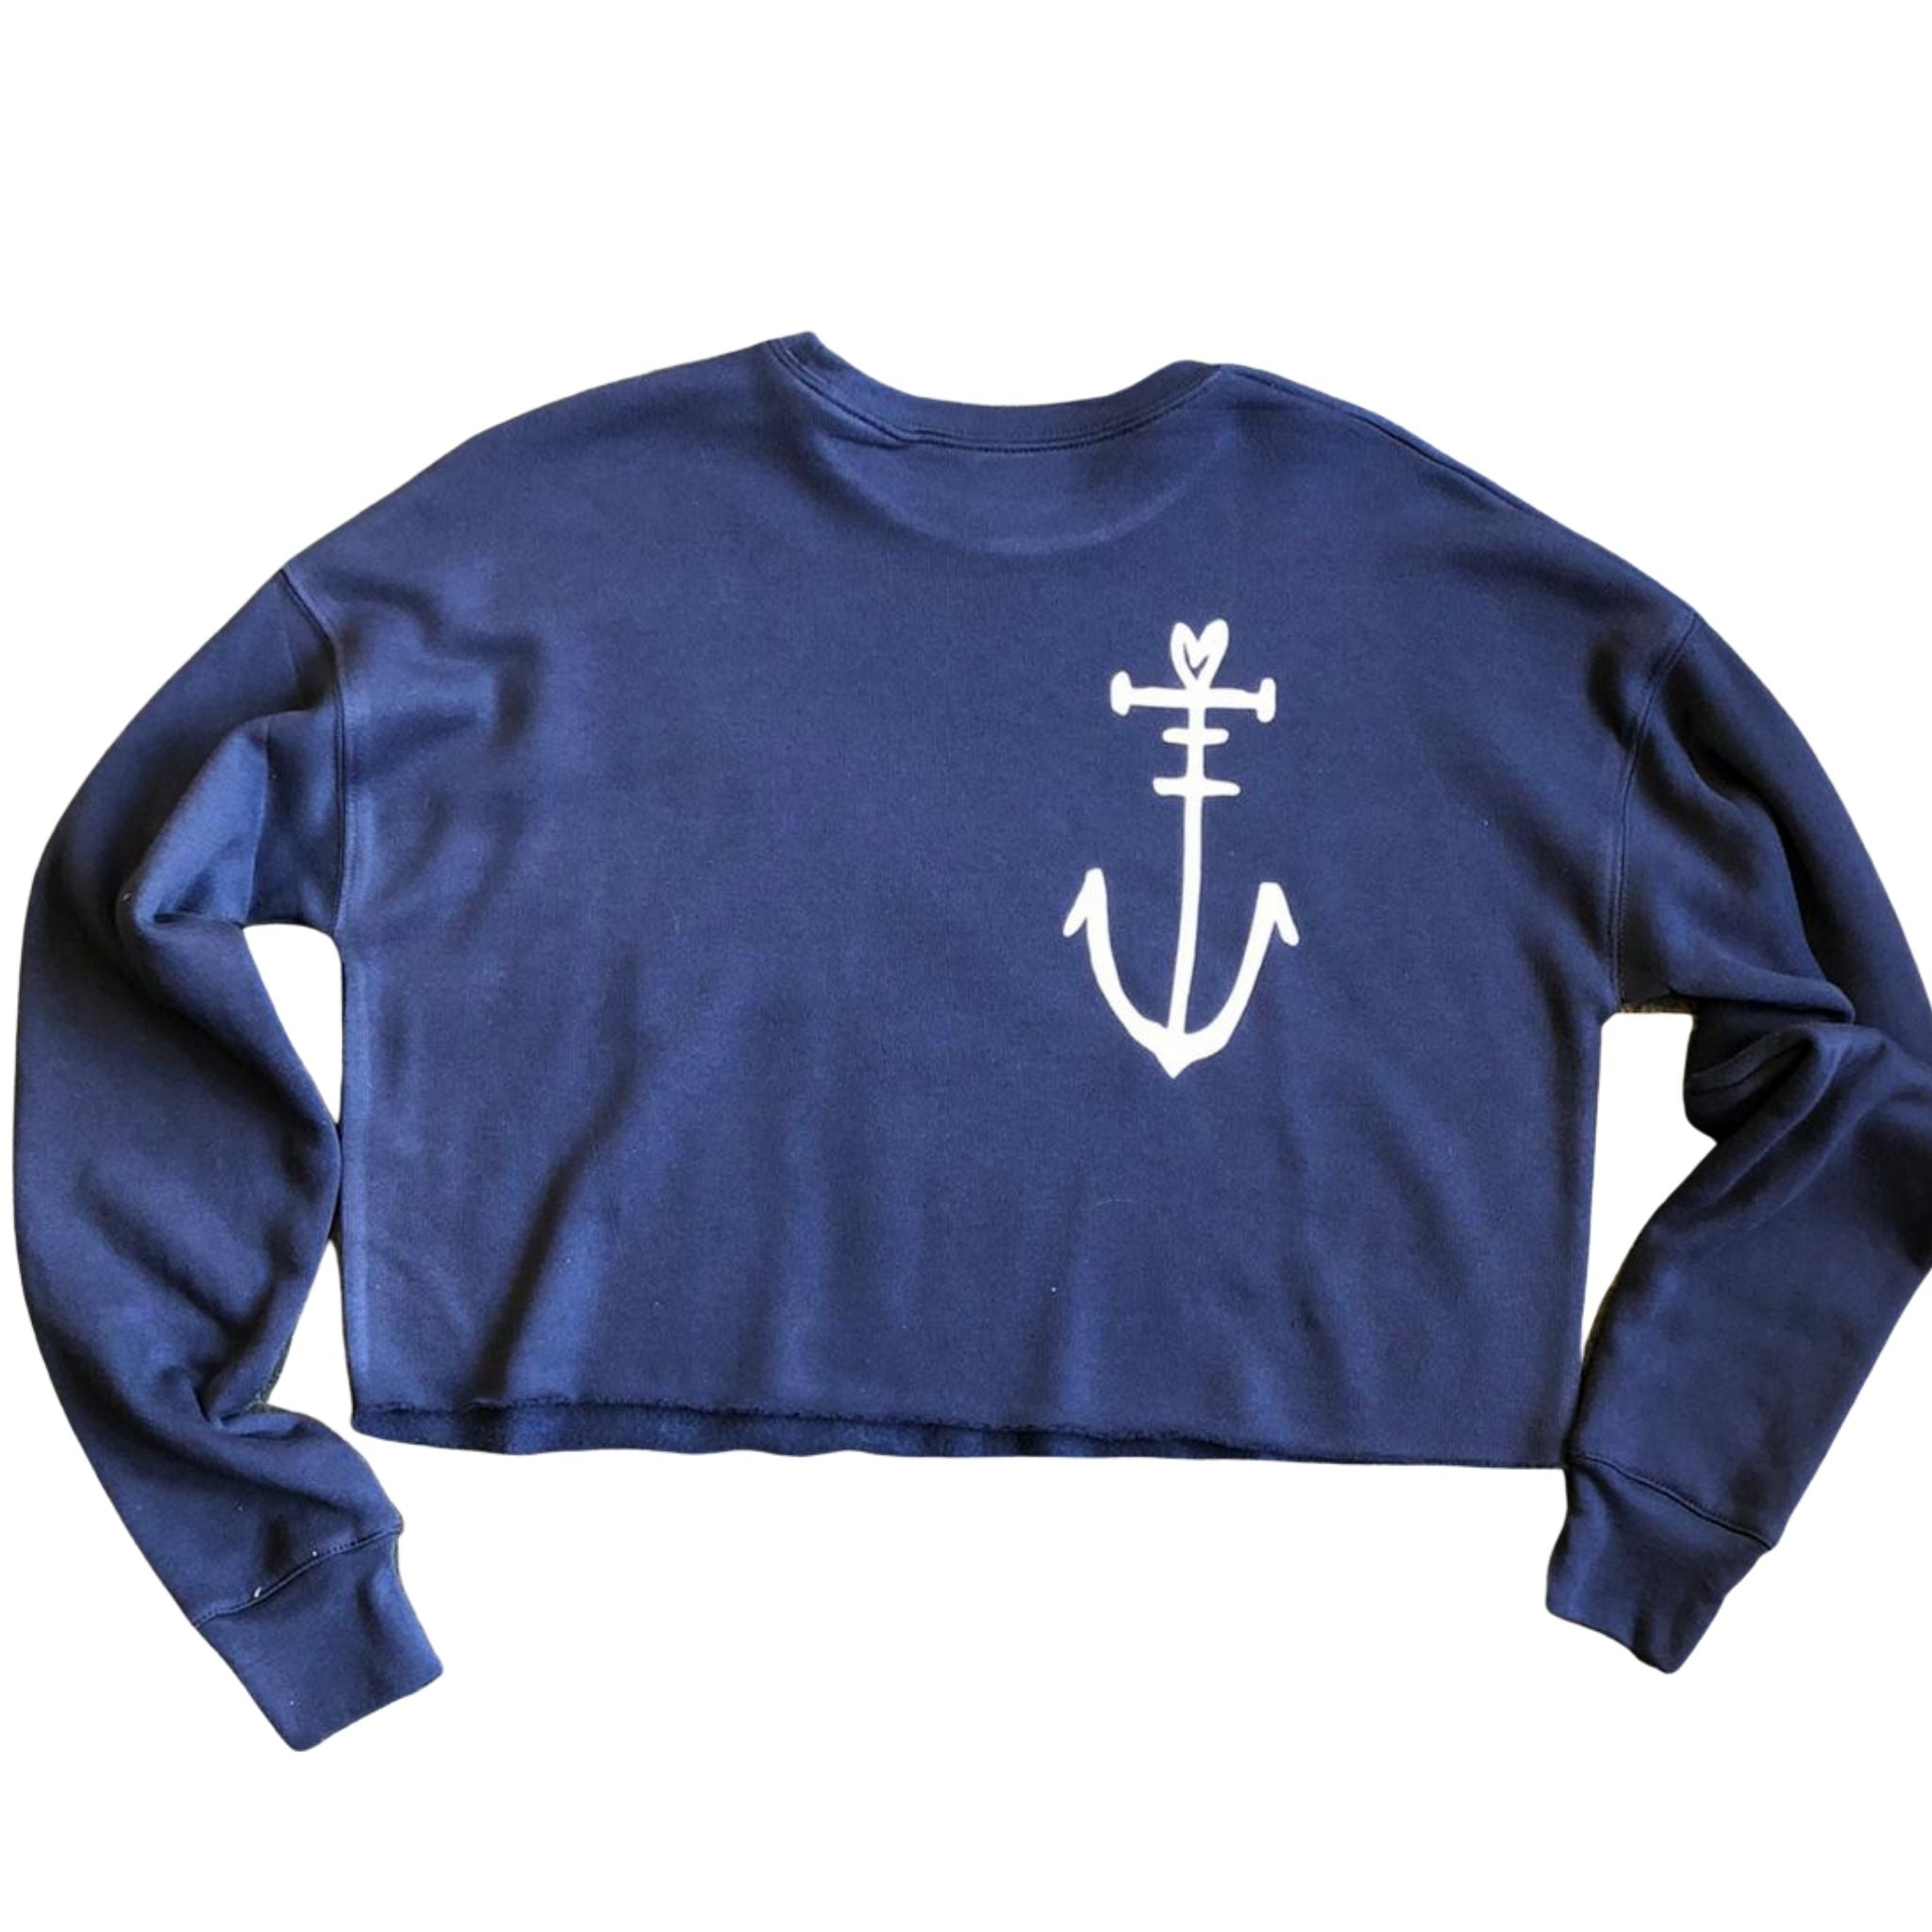 Cropped Blue Sweatshirt with Anchor Motif